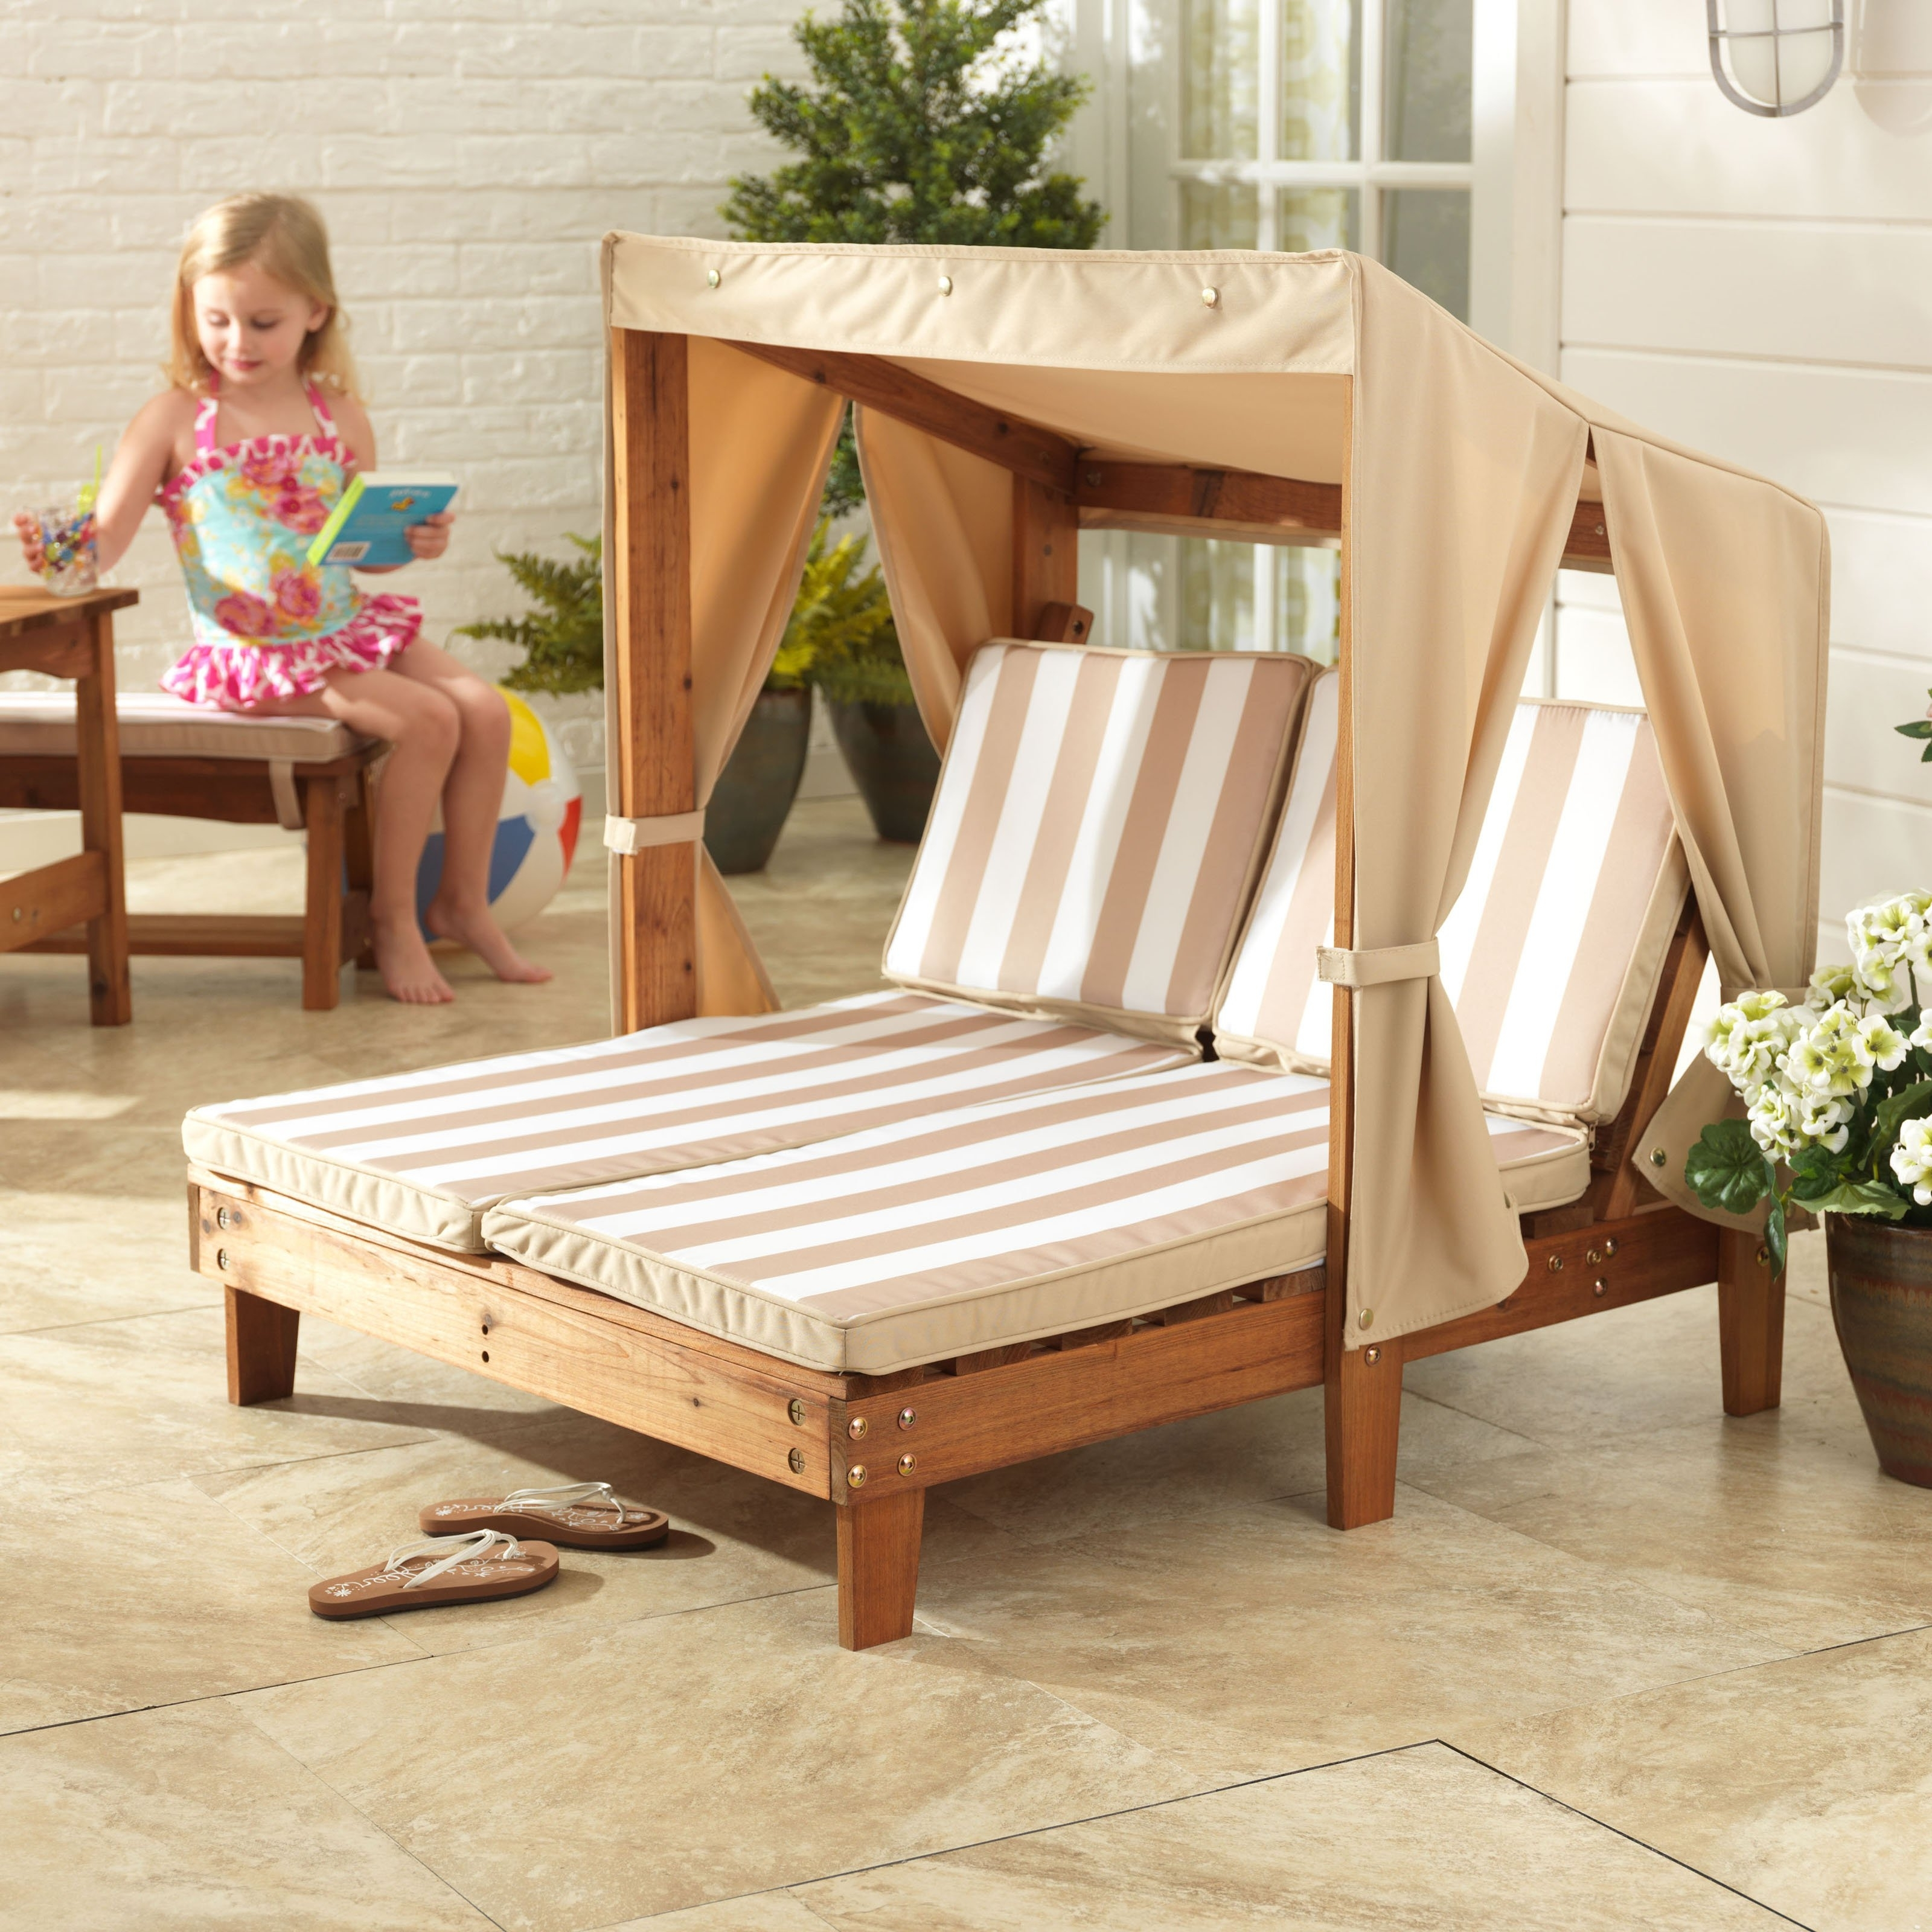 Kidkraft Chaise Lounges for Popular Kidkraft Double Chaise Chair - 502 - Walmart